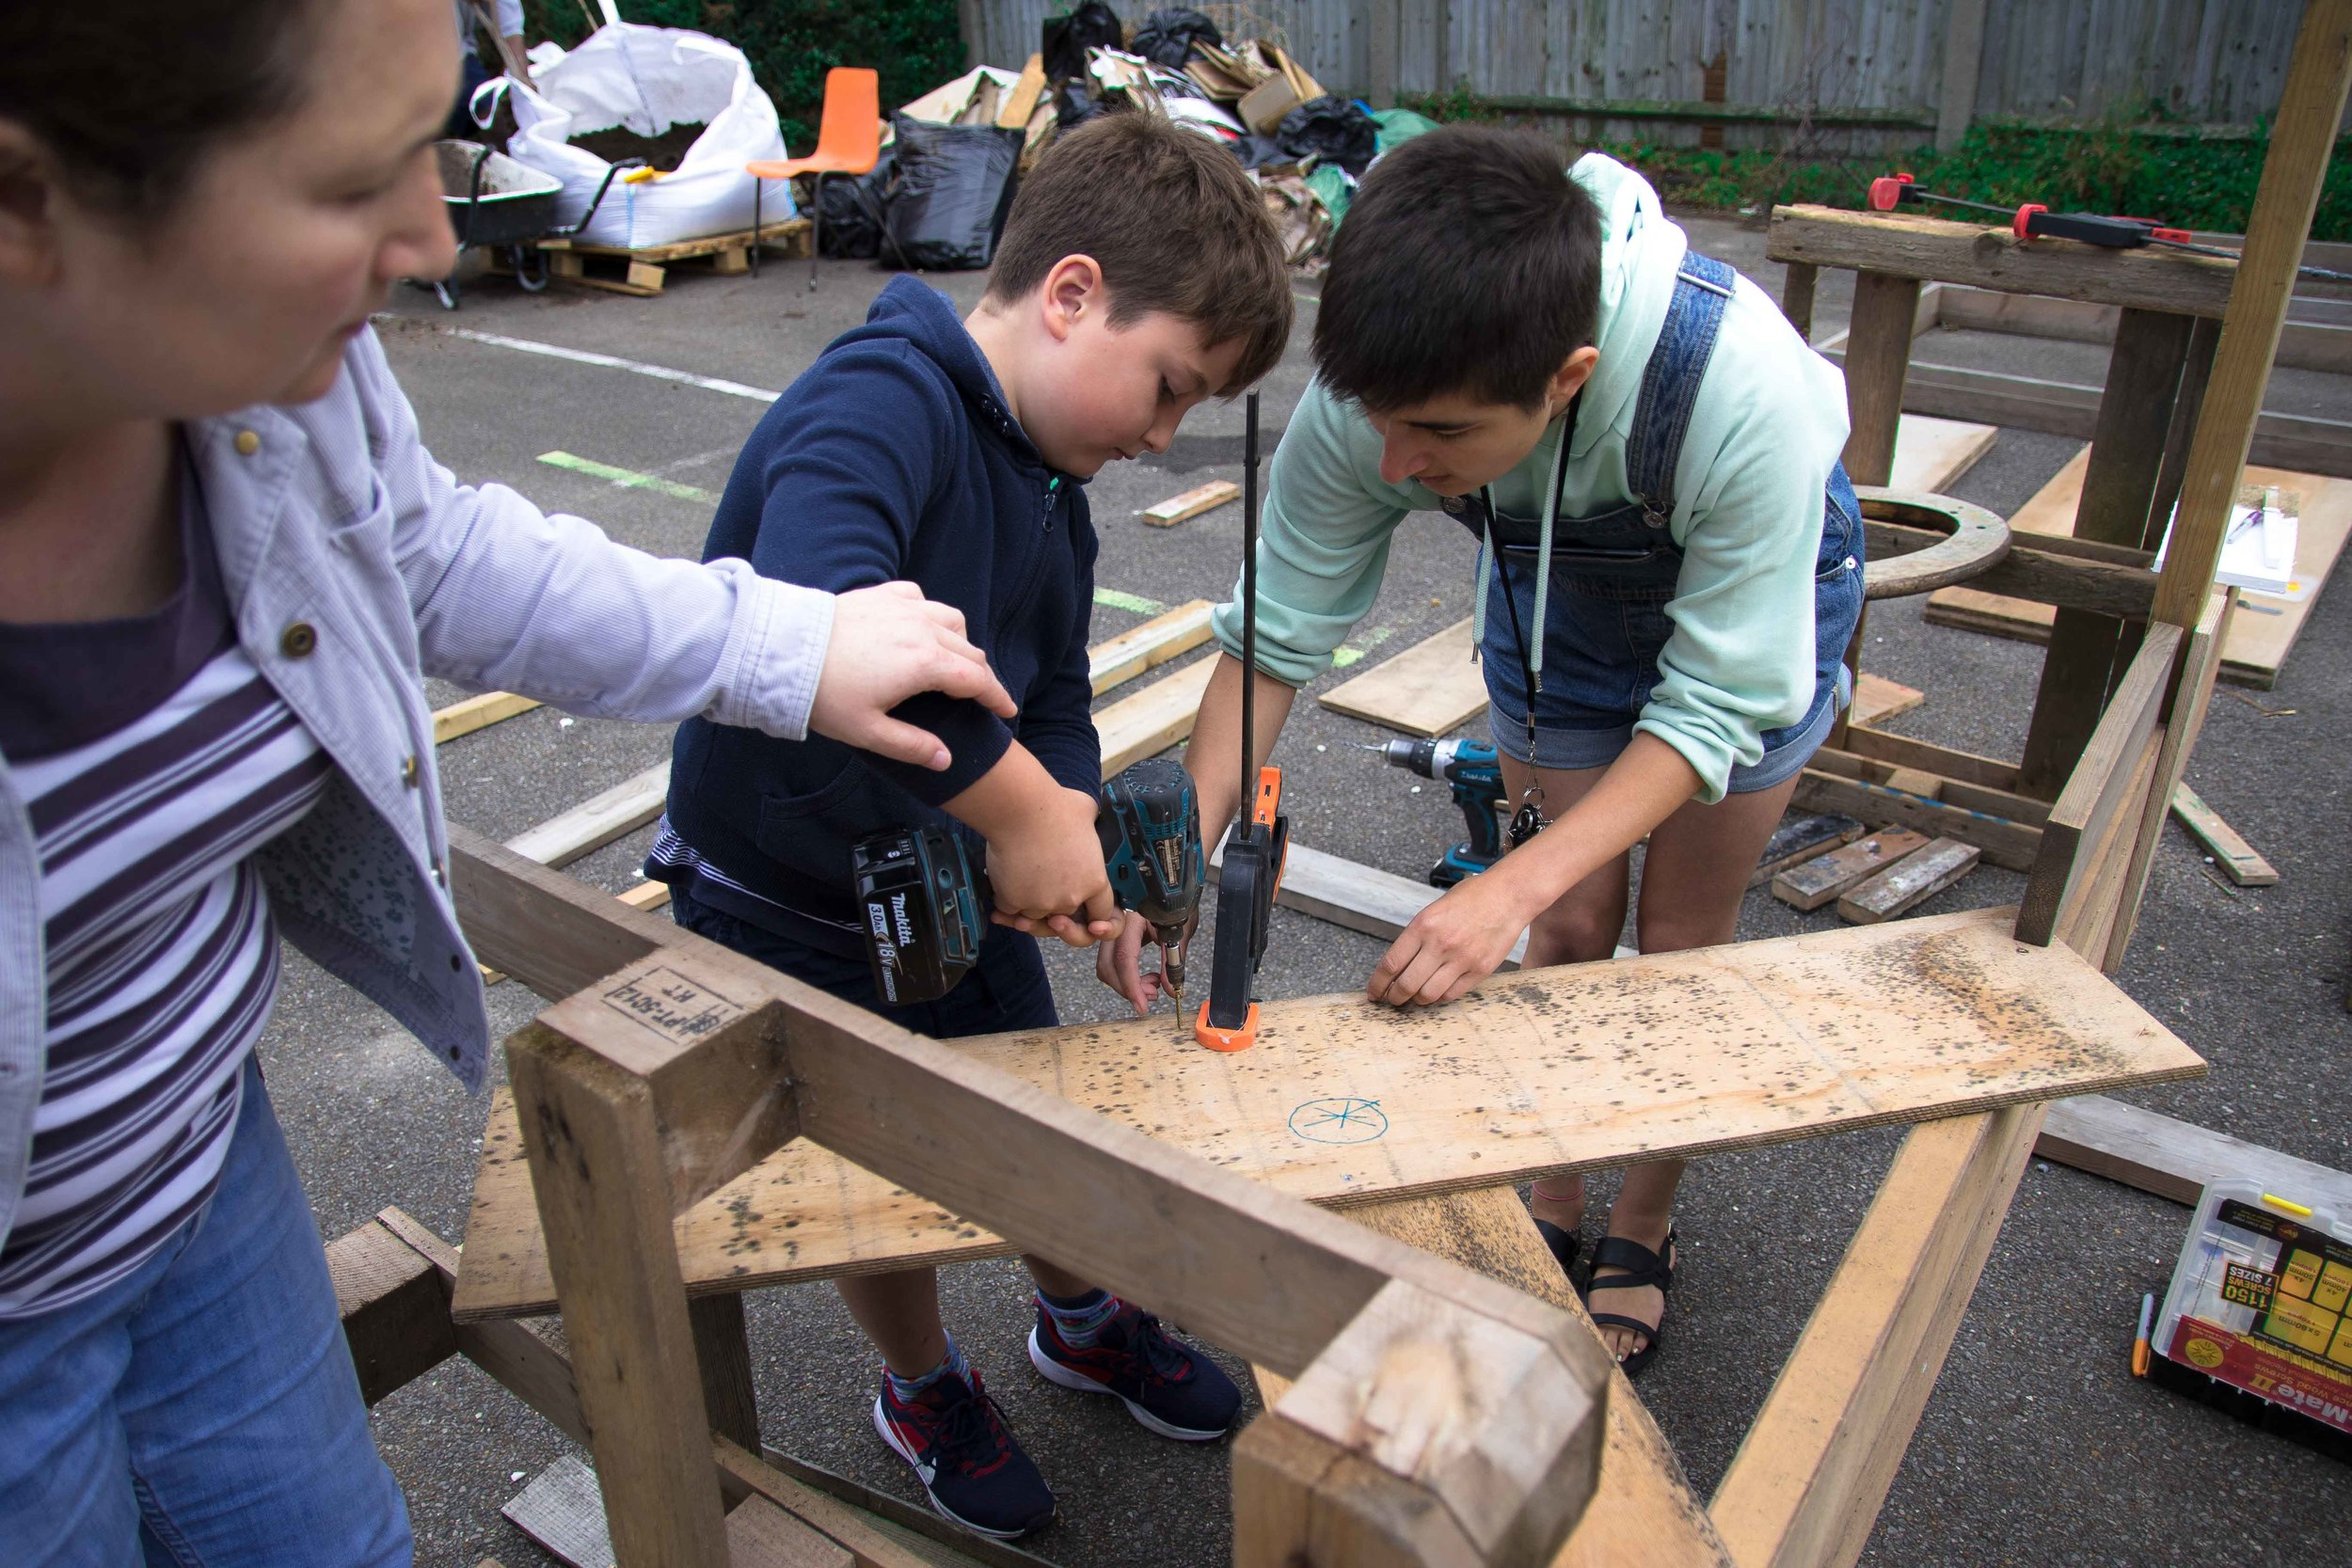 A child building a structure at the Beacon Garden Workshop at The White House